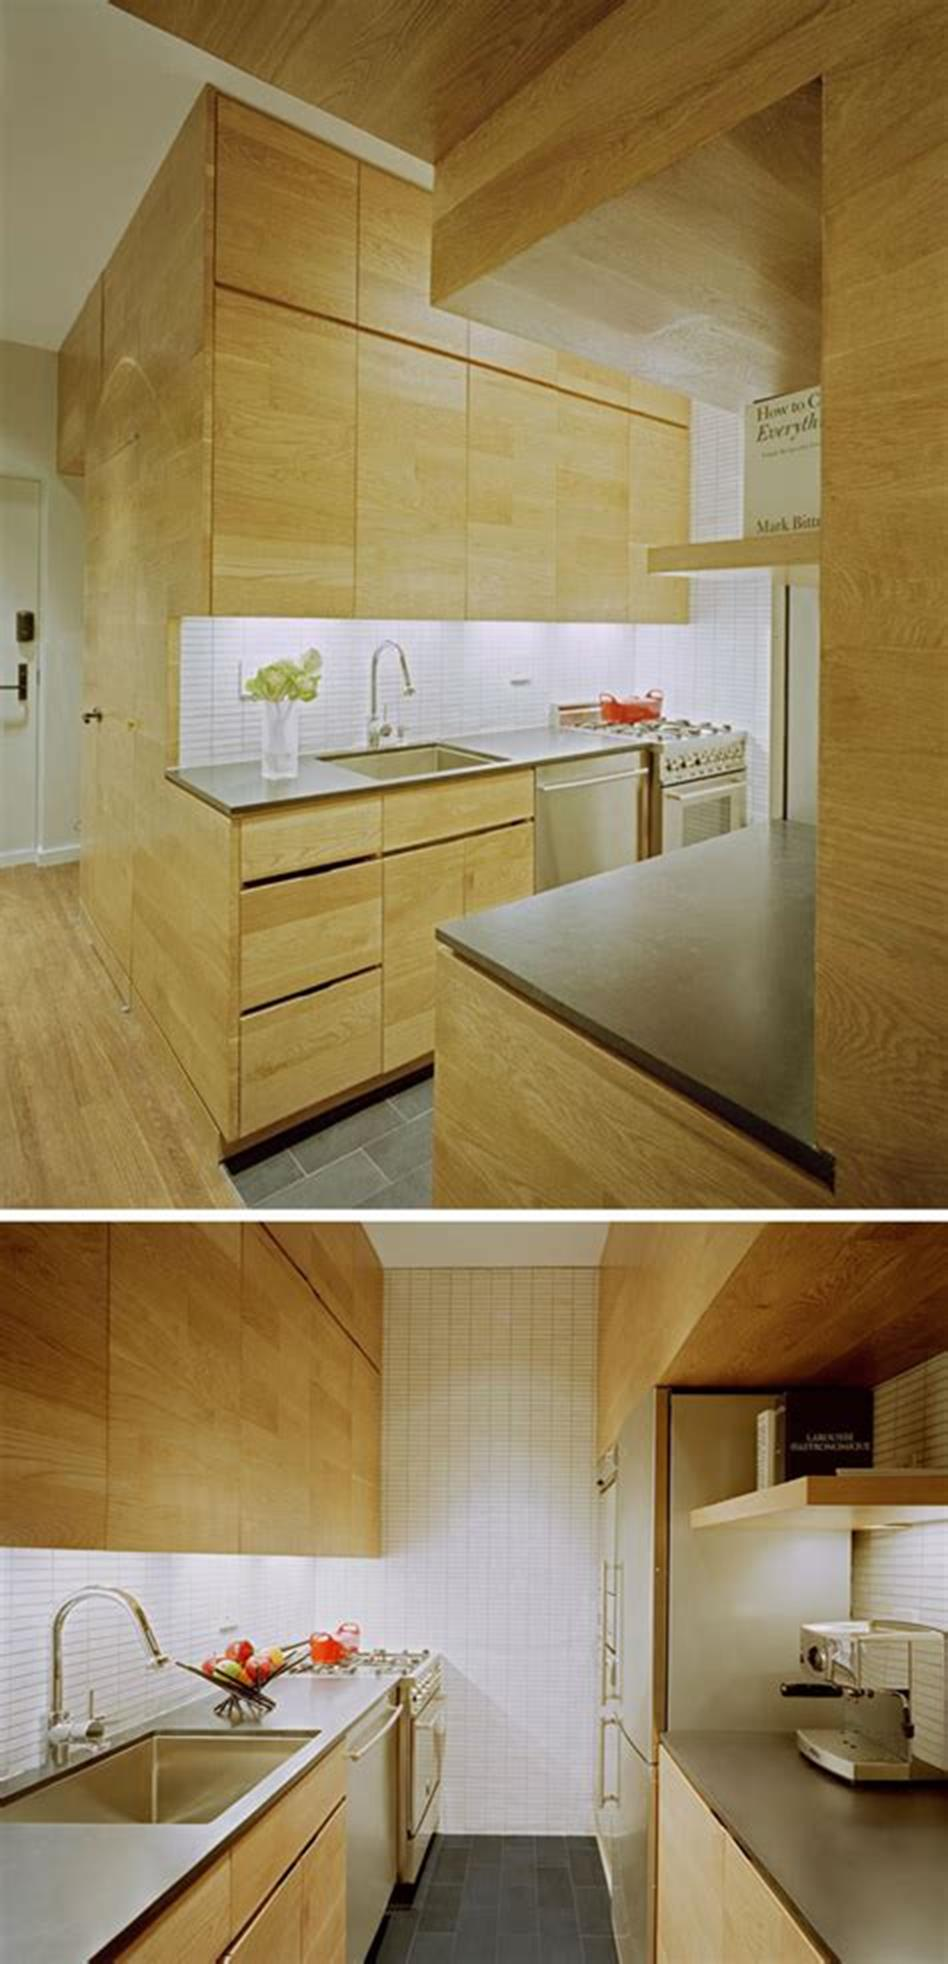 43 Amazing Kitchen Remodeling Ideas for Small Kitchens 2019 10